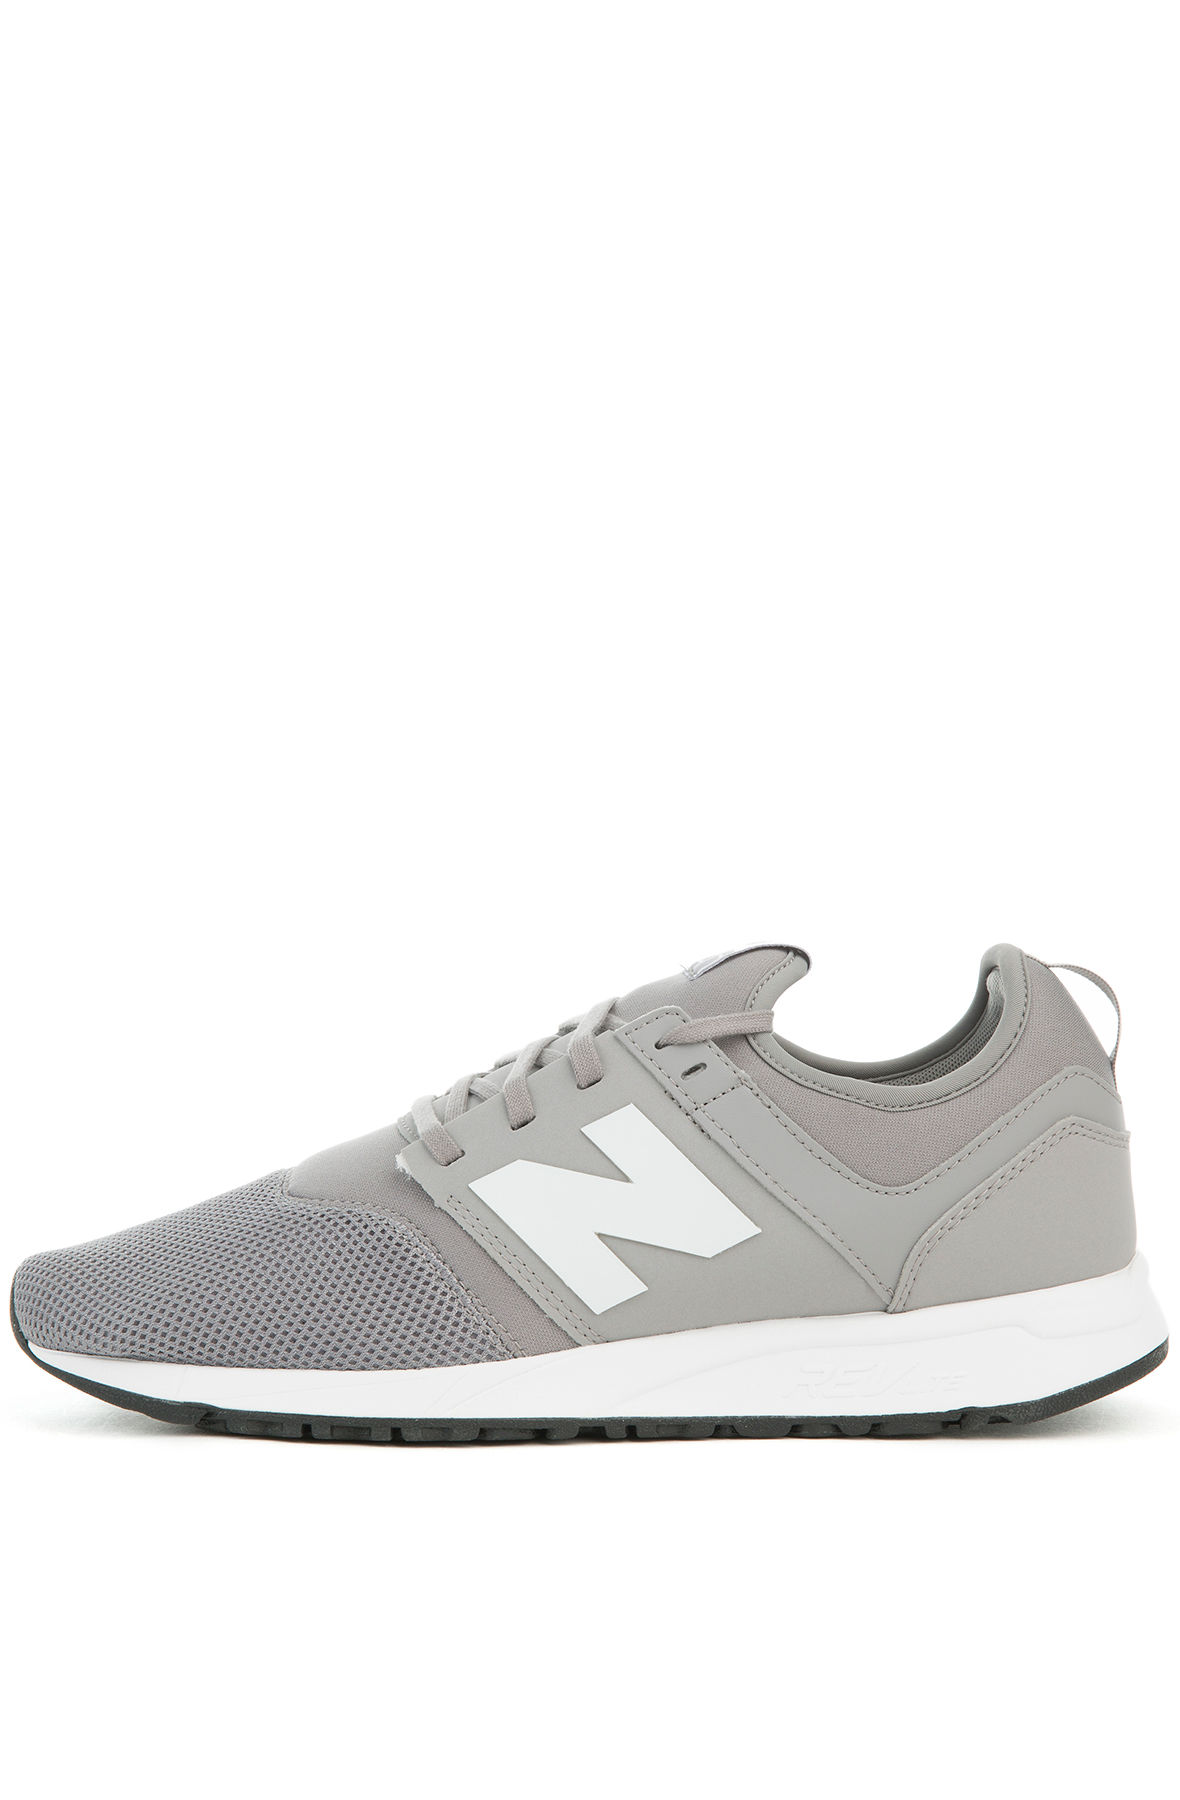 Image of The 247 Sneaker in Grey and White